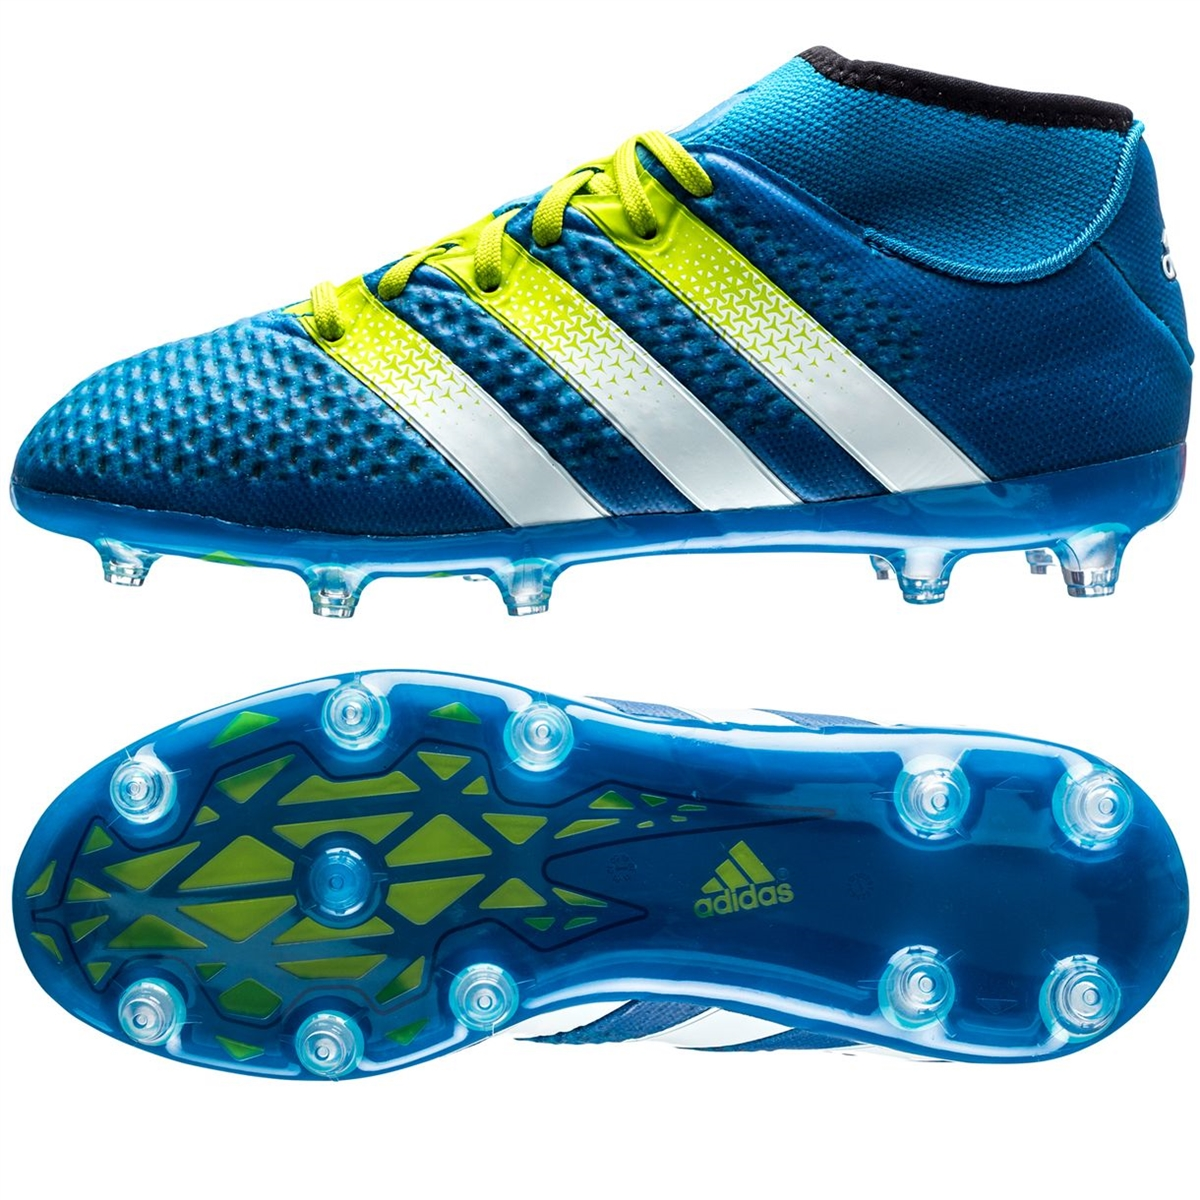 low priced a2fbb 337e6 Adidas ACE 16.1 Primeknit Youth FG Soccer Cleats (Shock/Semi Solar Slime)